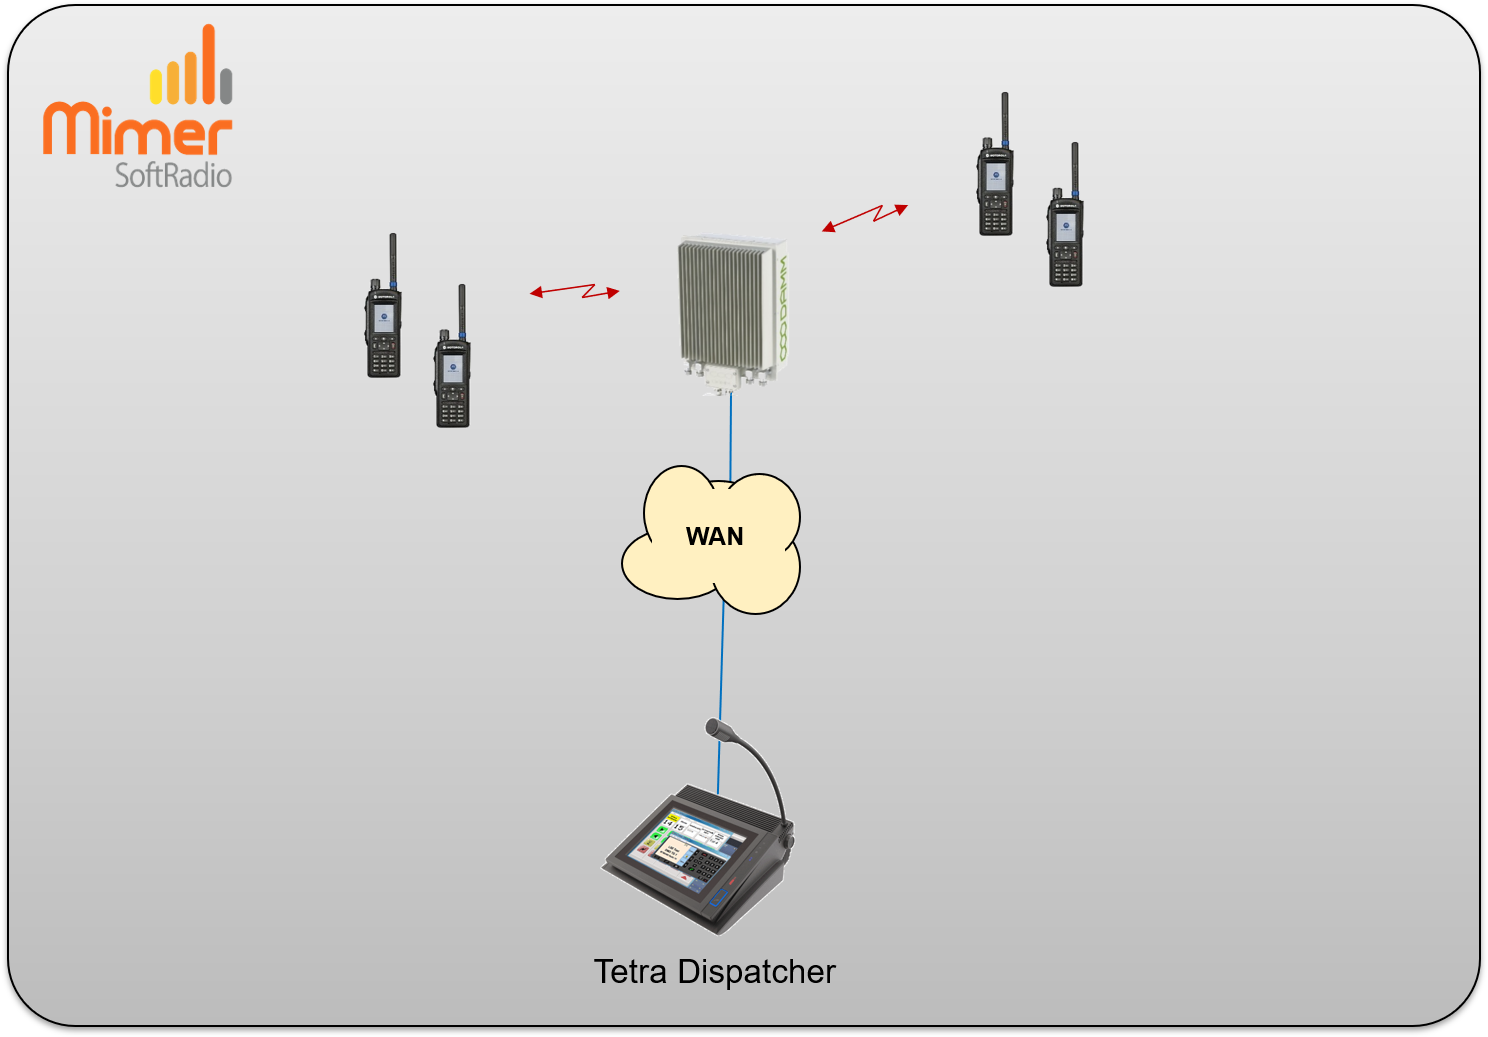 SoftRadio dispatcher connected to a Damm Tetra system